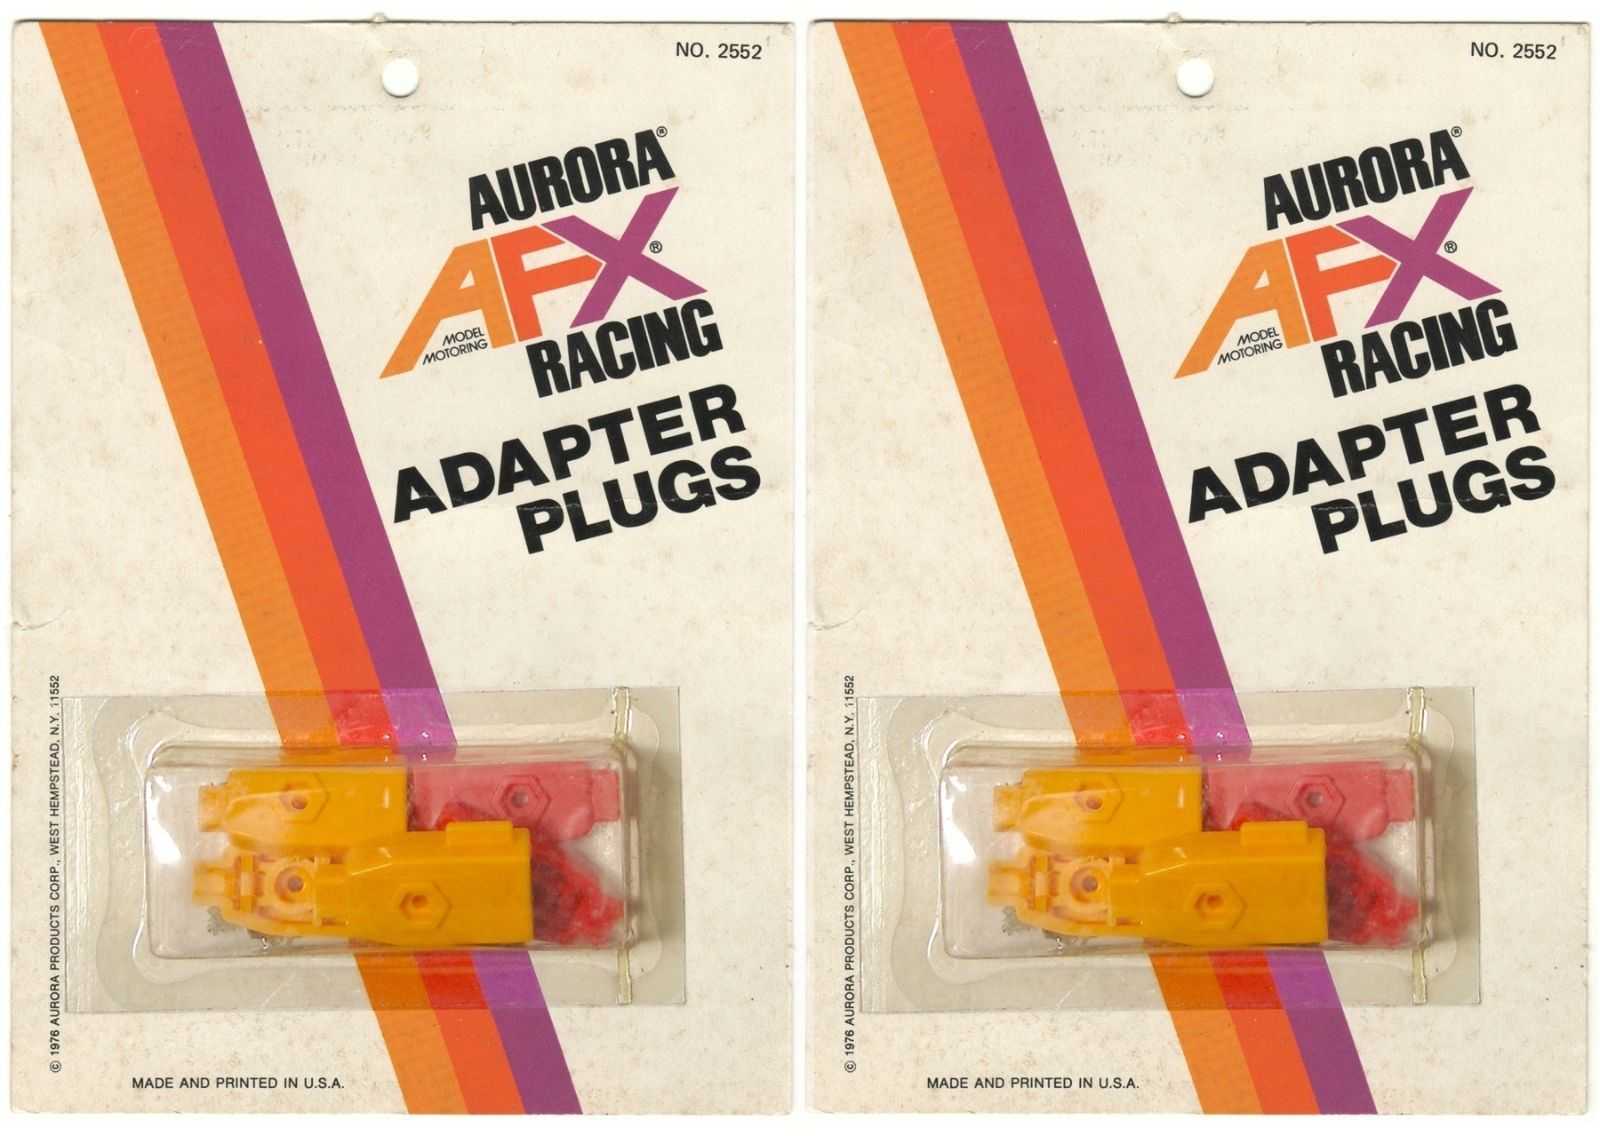 An Ho Switch Track Wiring Schematic Diagrams Aurora Trusted Diagram Software 2 1976 Afx Racing